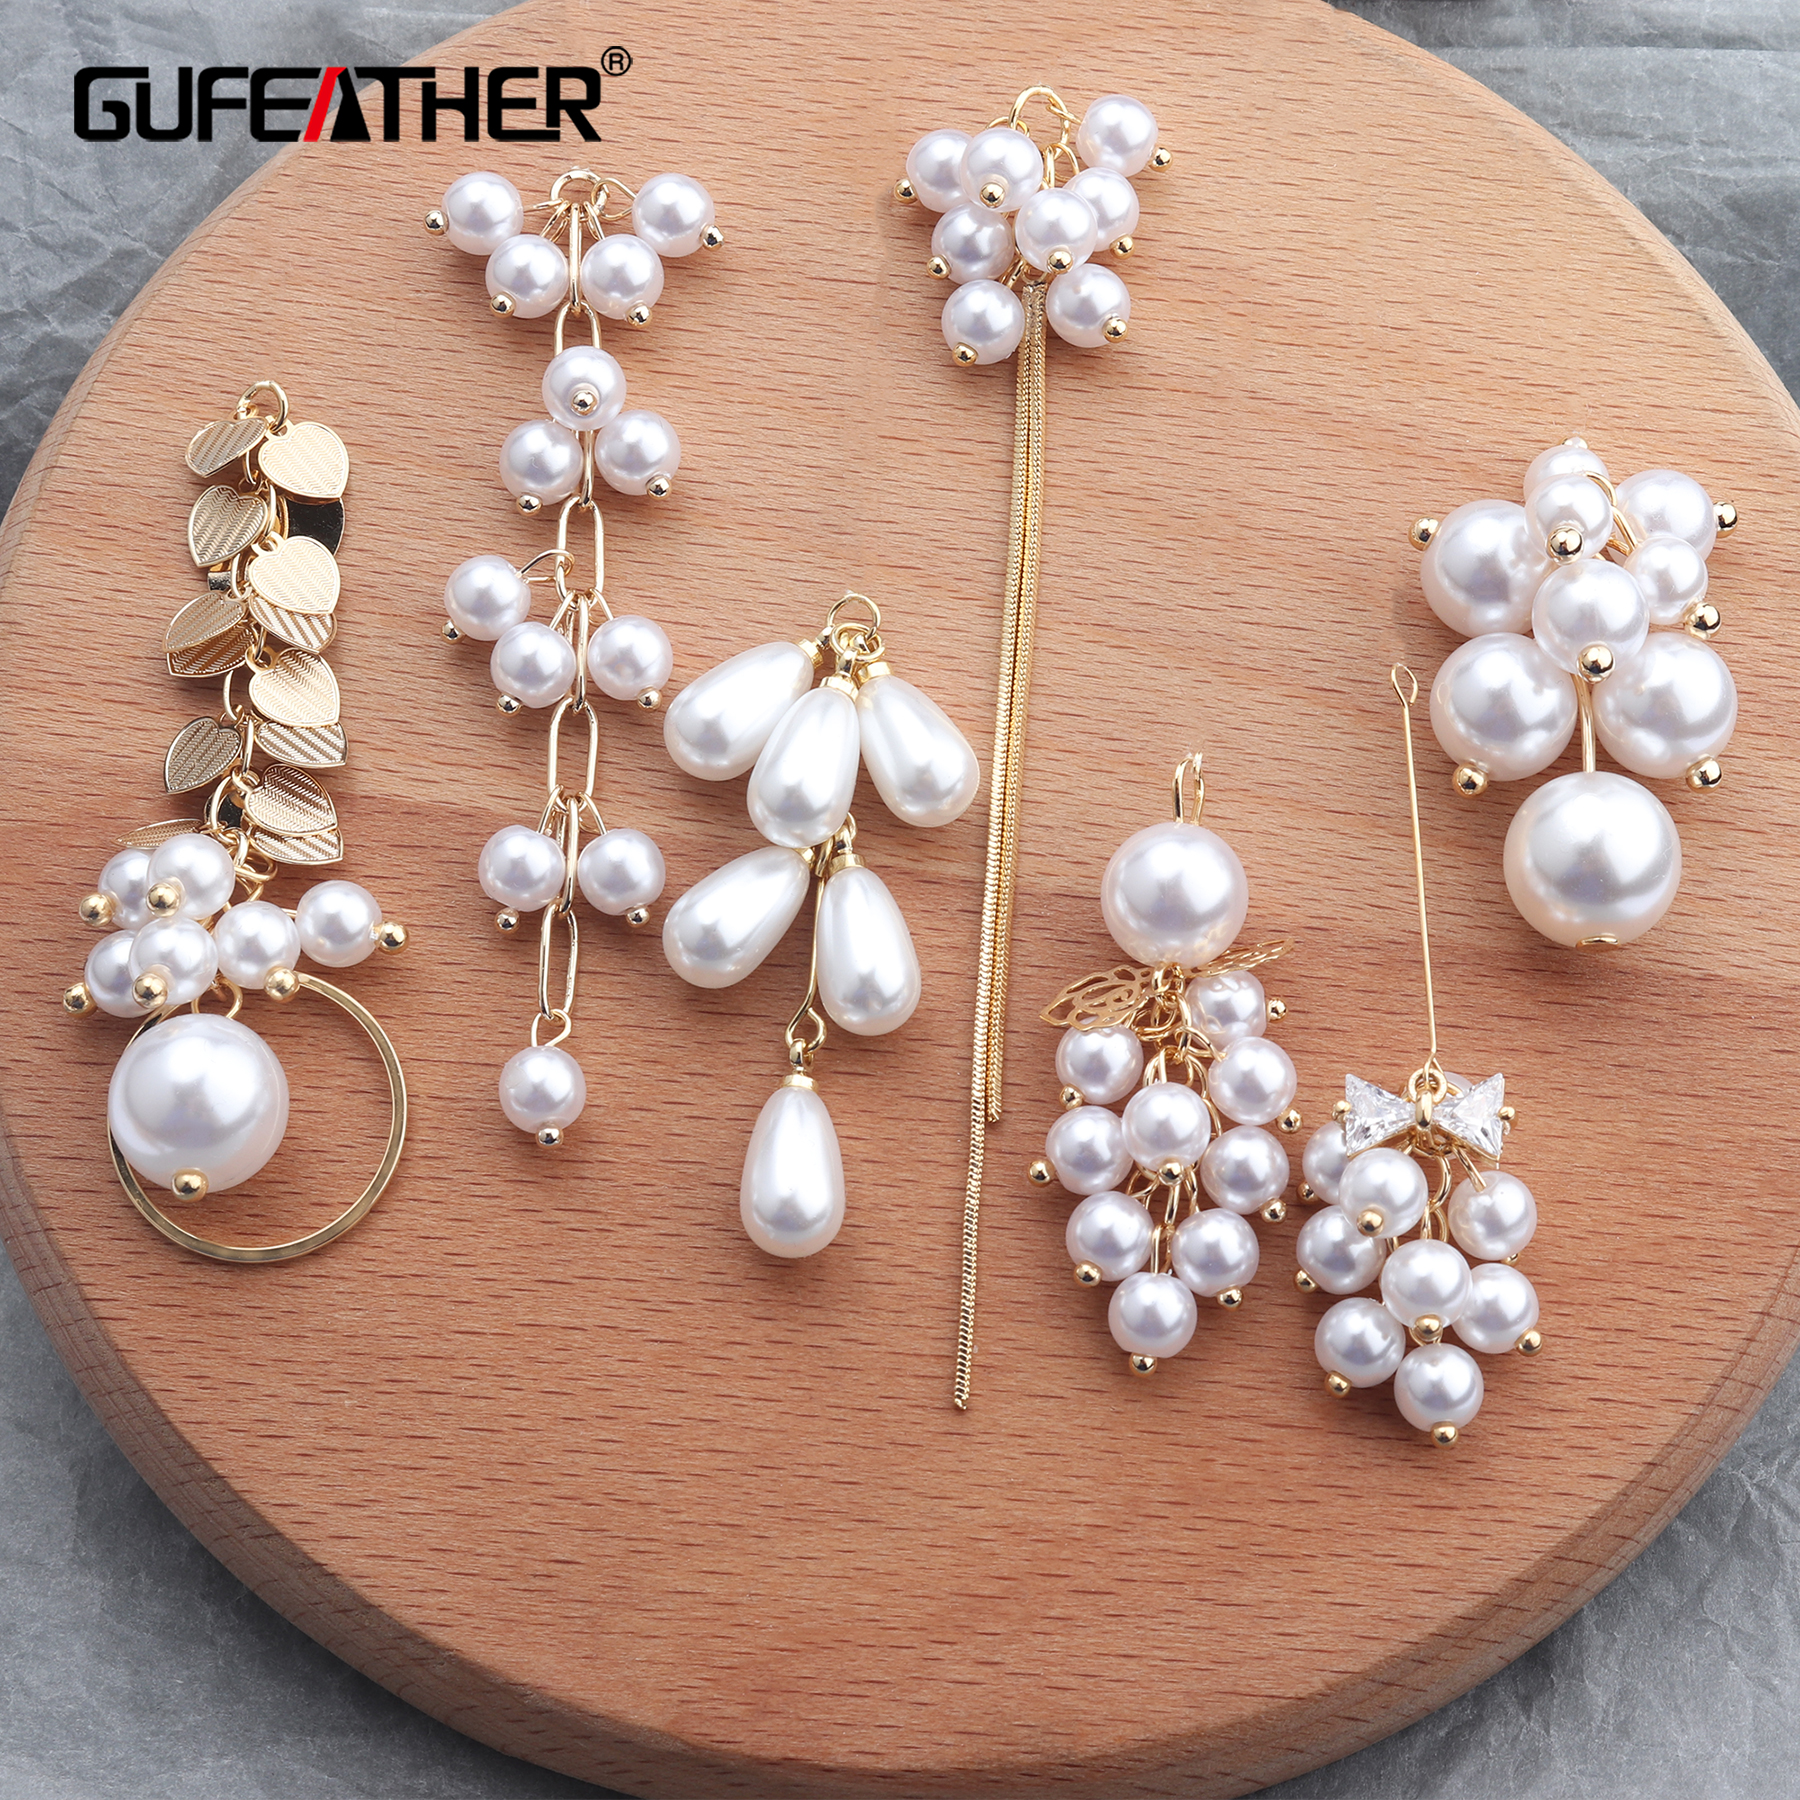 GUFEATHER M640,jewelry Making,14k Gold Plated,ear Chain,diy Beads Pendant,copper Metal,hand Made,charms,diy Earrings,6pcs/lot